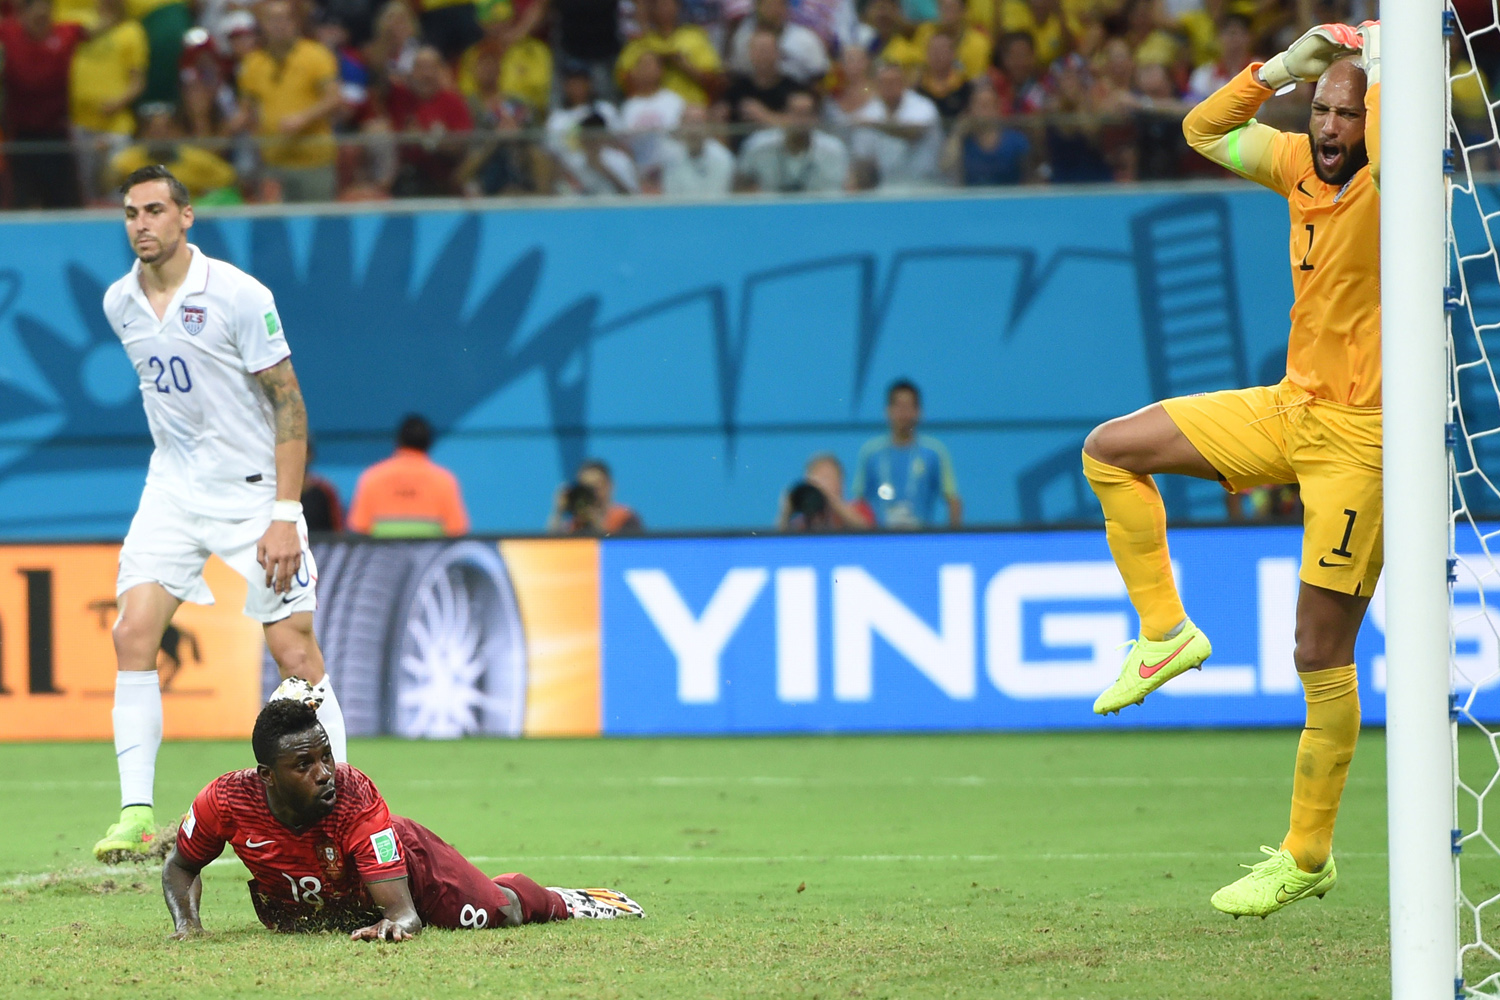 Jun. 22, 2014. US goalkeeper Tim Howard (R) reacts after goal from Portugal's forward Silvestre Varela (2nd L) during a Group G match between USA and Portugal at the Amazonia Arena in Manaus during the 2014 FIFA World Cup.